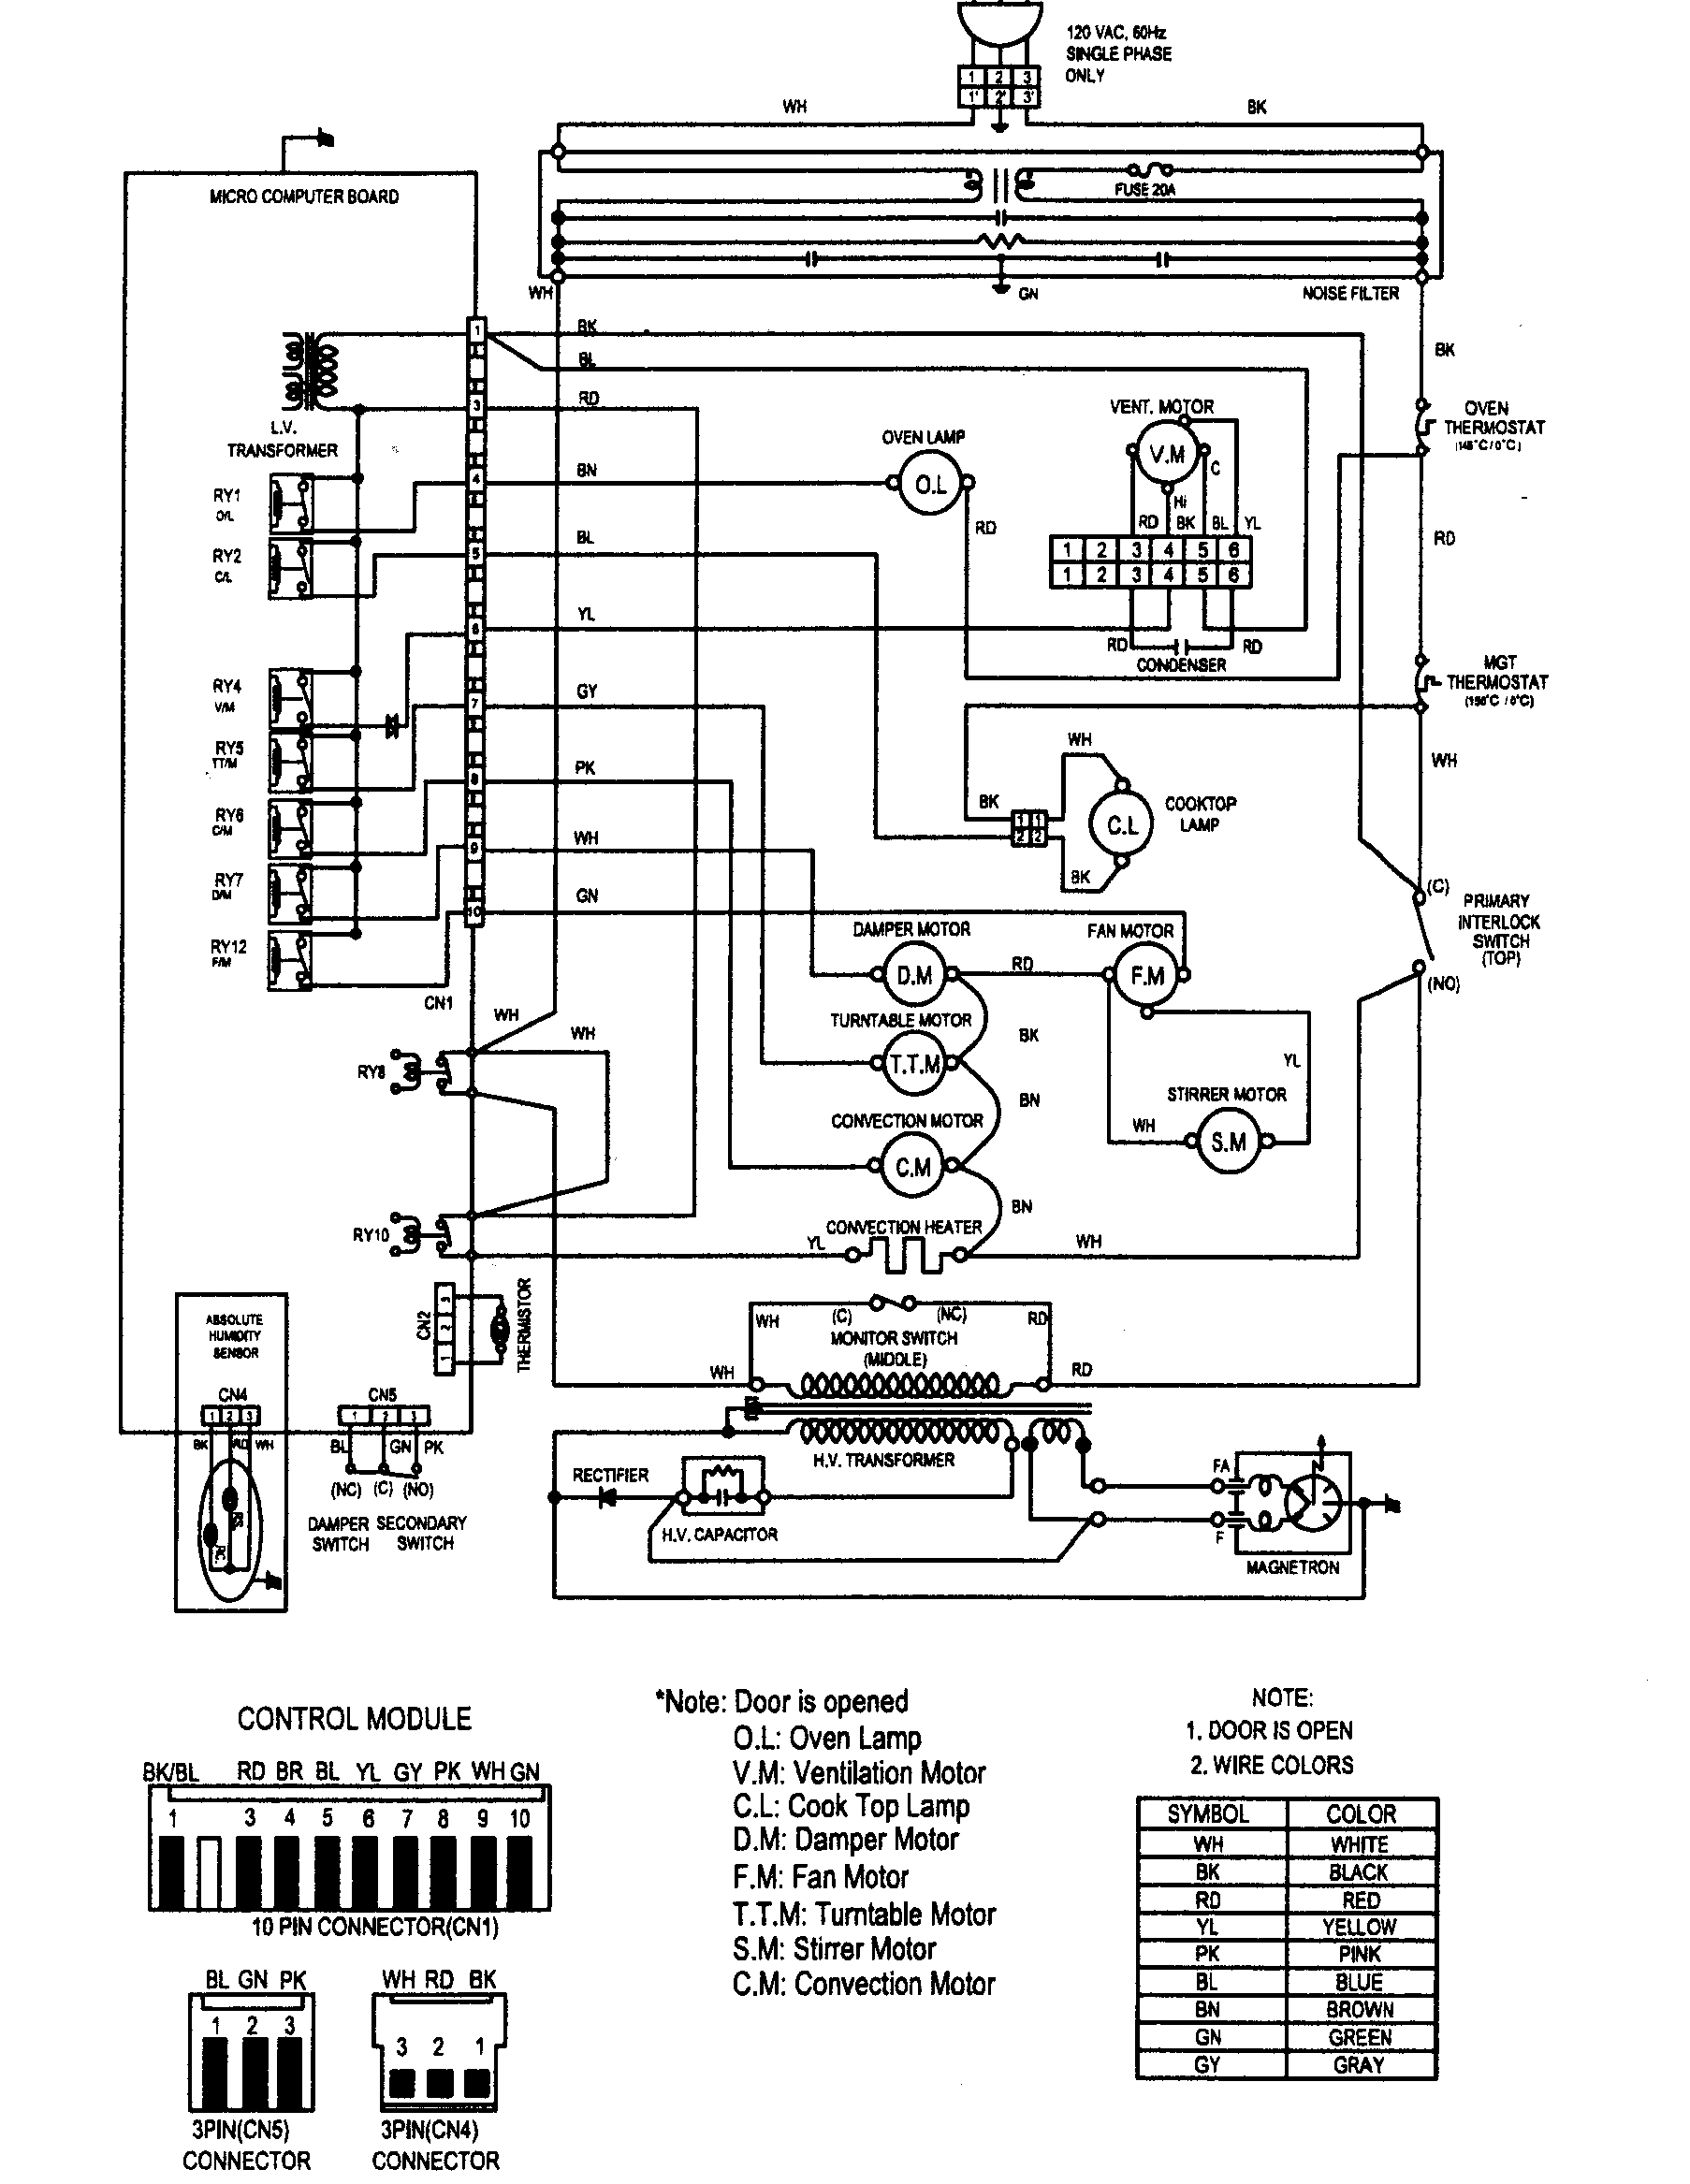 Wiring Diagram For Kenmore Elite Dryer Front Loader - Wiring ... on